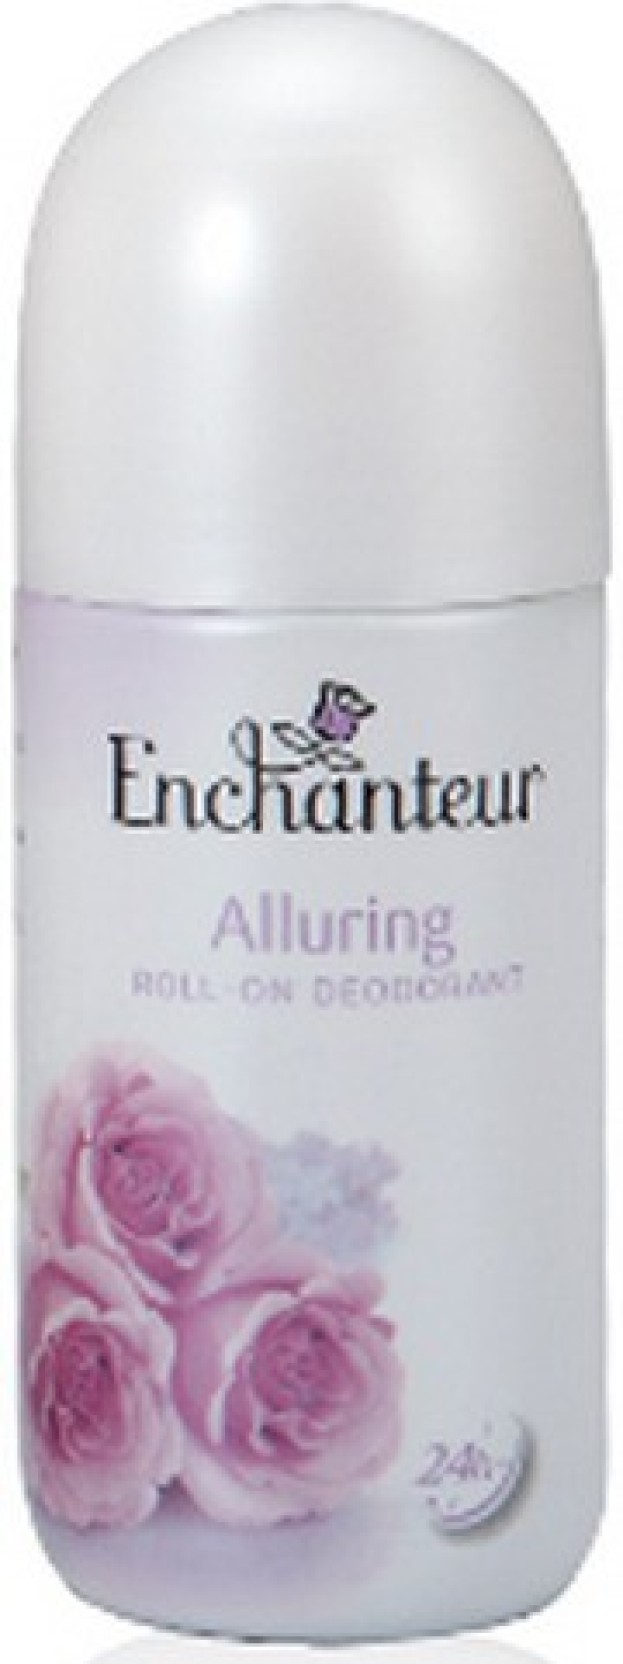 Enchanteur Alluring Deodorant Roll On For Women Price In India Eau De Cologne Romantic 120 Ml Offer